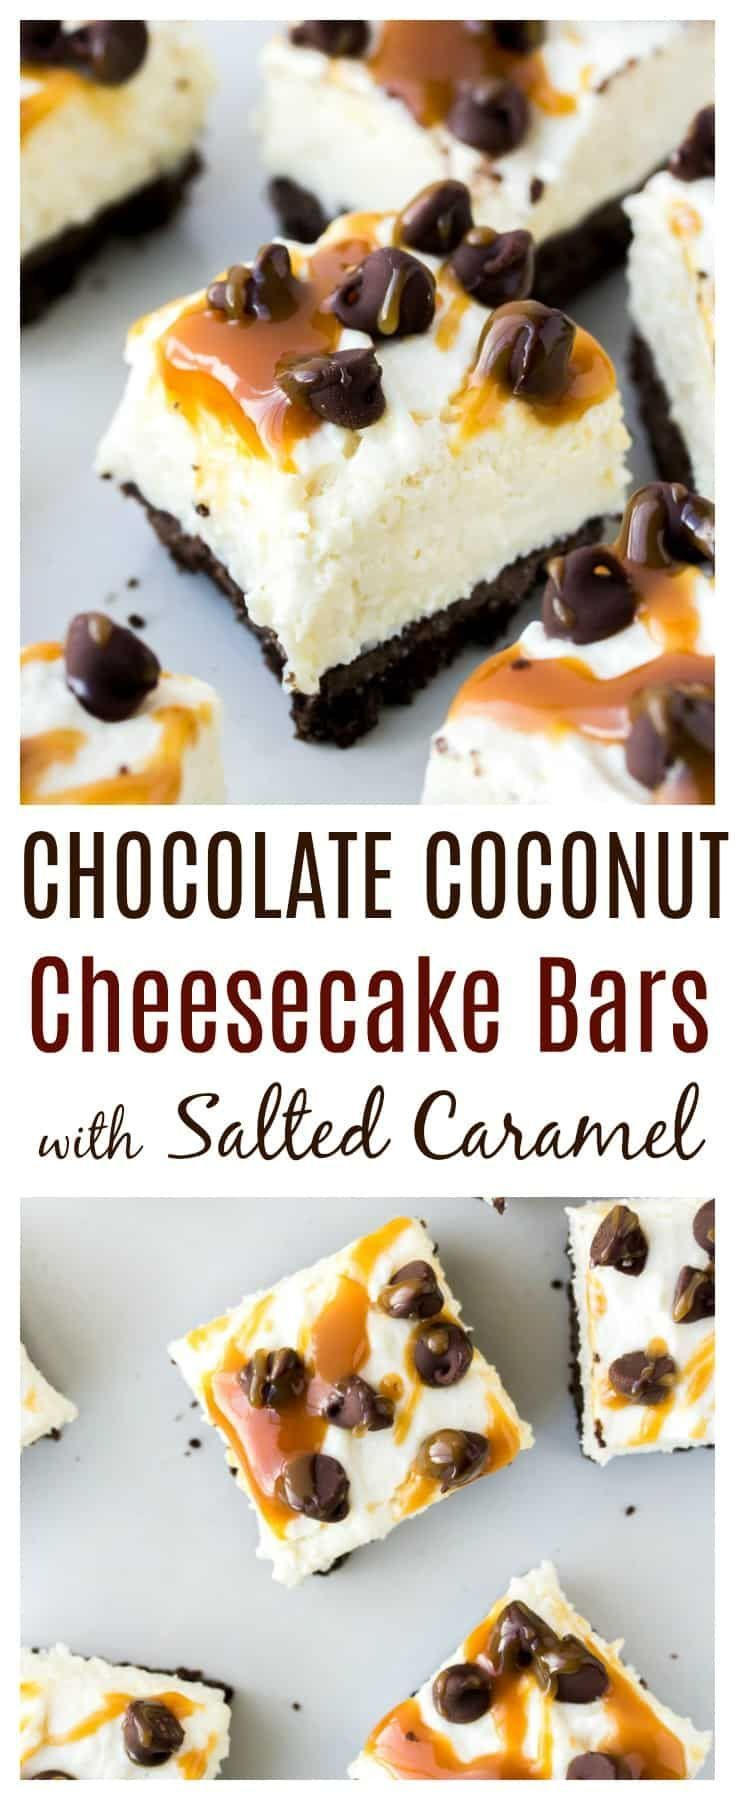 Coconut Cheesecake Bars consist of a chocolate graham cracker crust, topped with a creamy no bake coconut cheesecake. They are then topped with chocolate chips and salted caramel sauce for an easy-to-make decadent dessert! #homemadegrahamcrackercrust Coconut Cheesecake Bars consist of a chocolate graham cracker crust, topped with a creamy no bake coconut cheesecake. They are then topped with chocolate chips and salted caramel sauce for an easy-to-make decadent dessert! #homemadegrahamcrackercrus #homemadegrahamcrackercrust